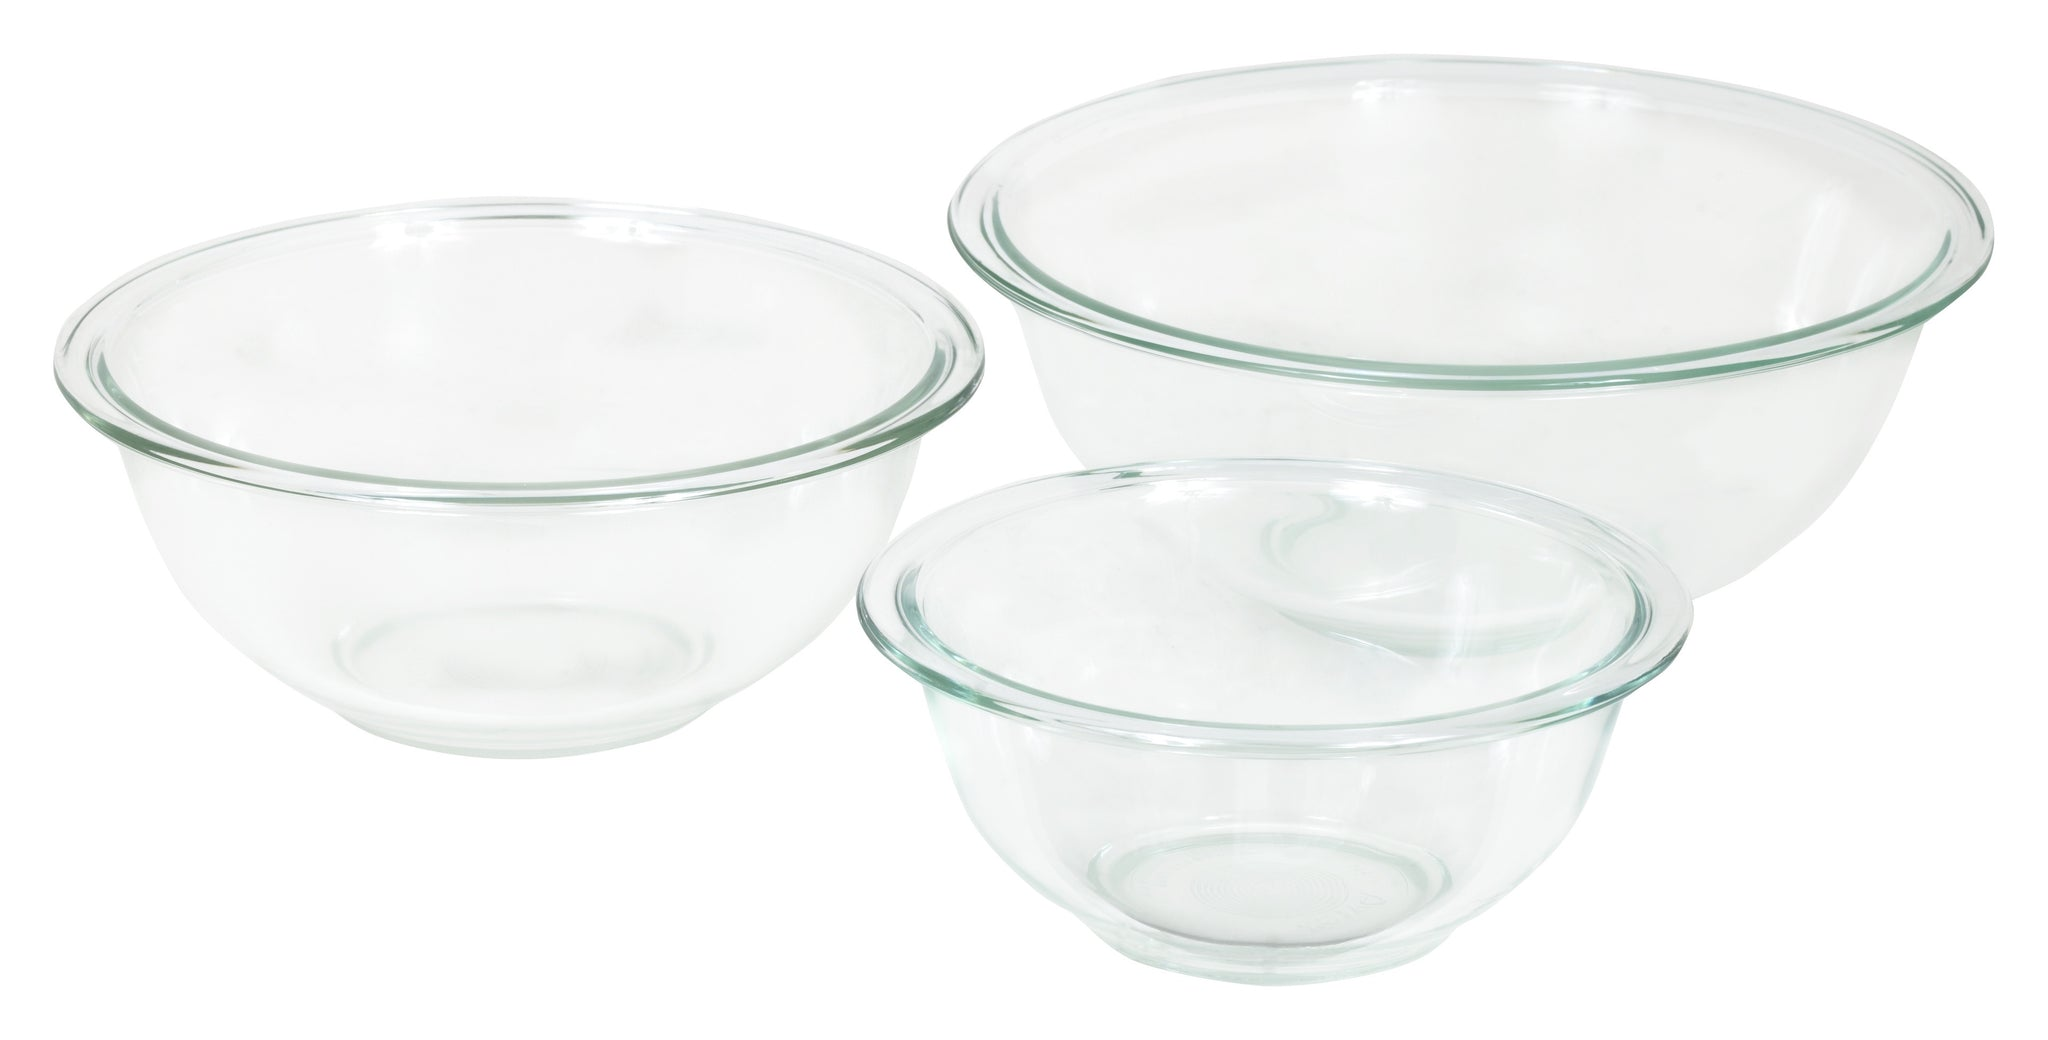 Pyrex Originals 3 Piece Mixing Bowl Set-1089571